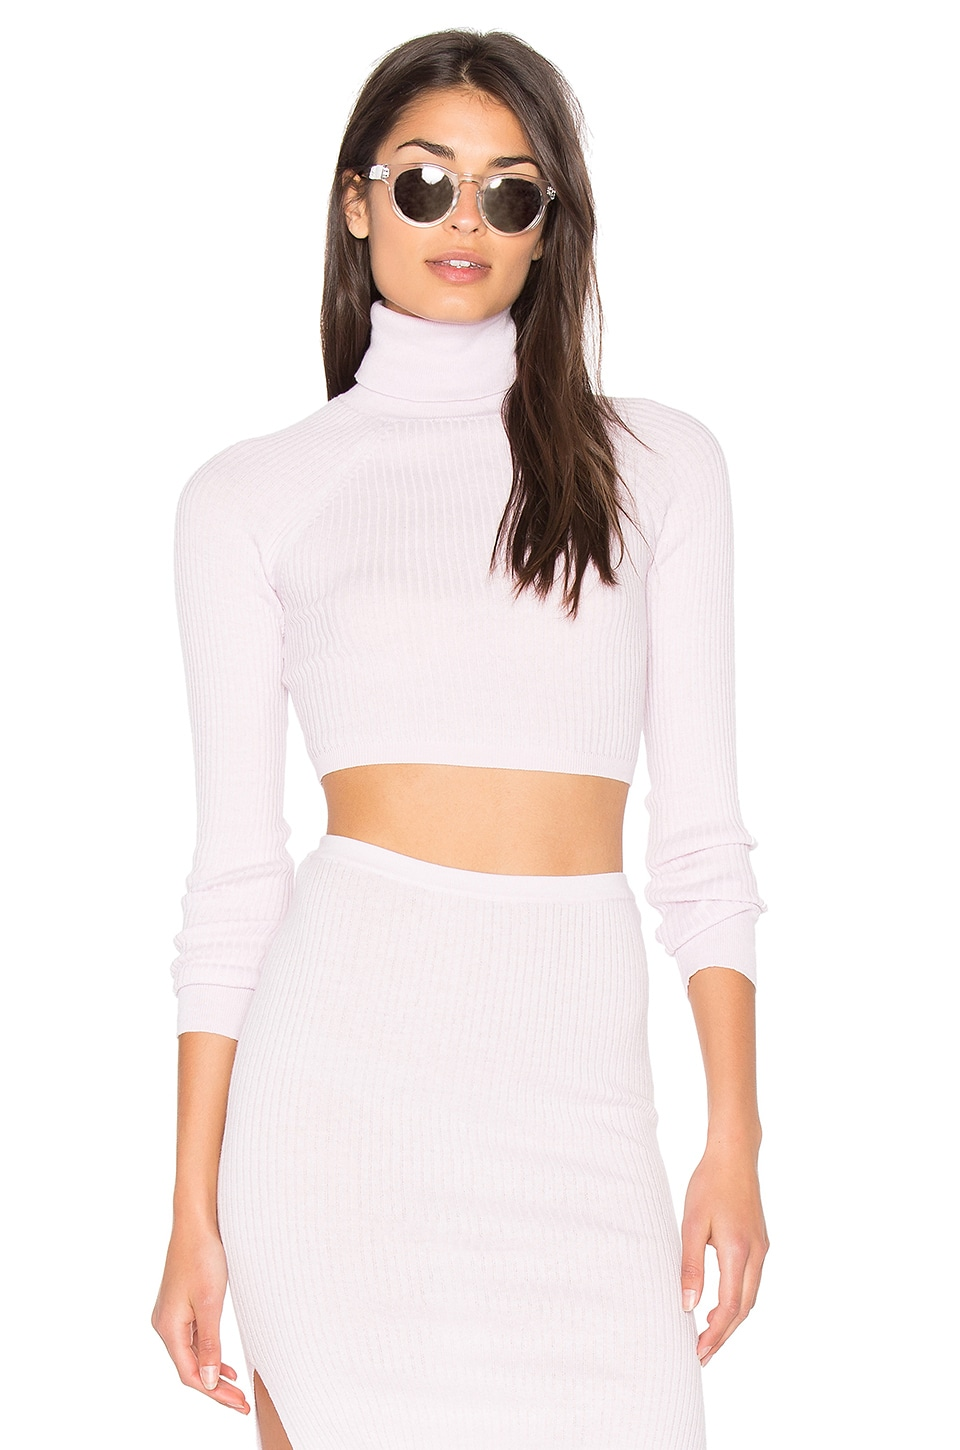 360CASHMERE x Hanna Beth Bria Crop Sweater in Powder Puff